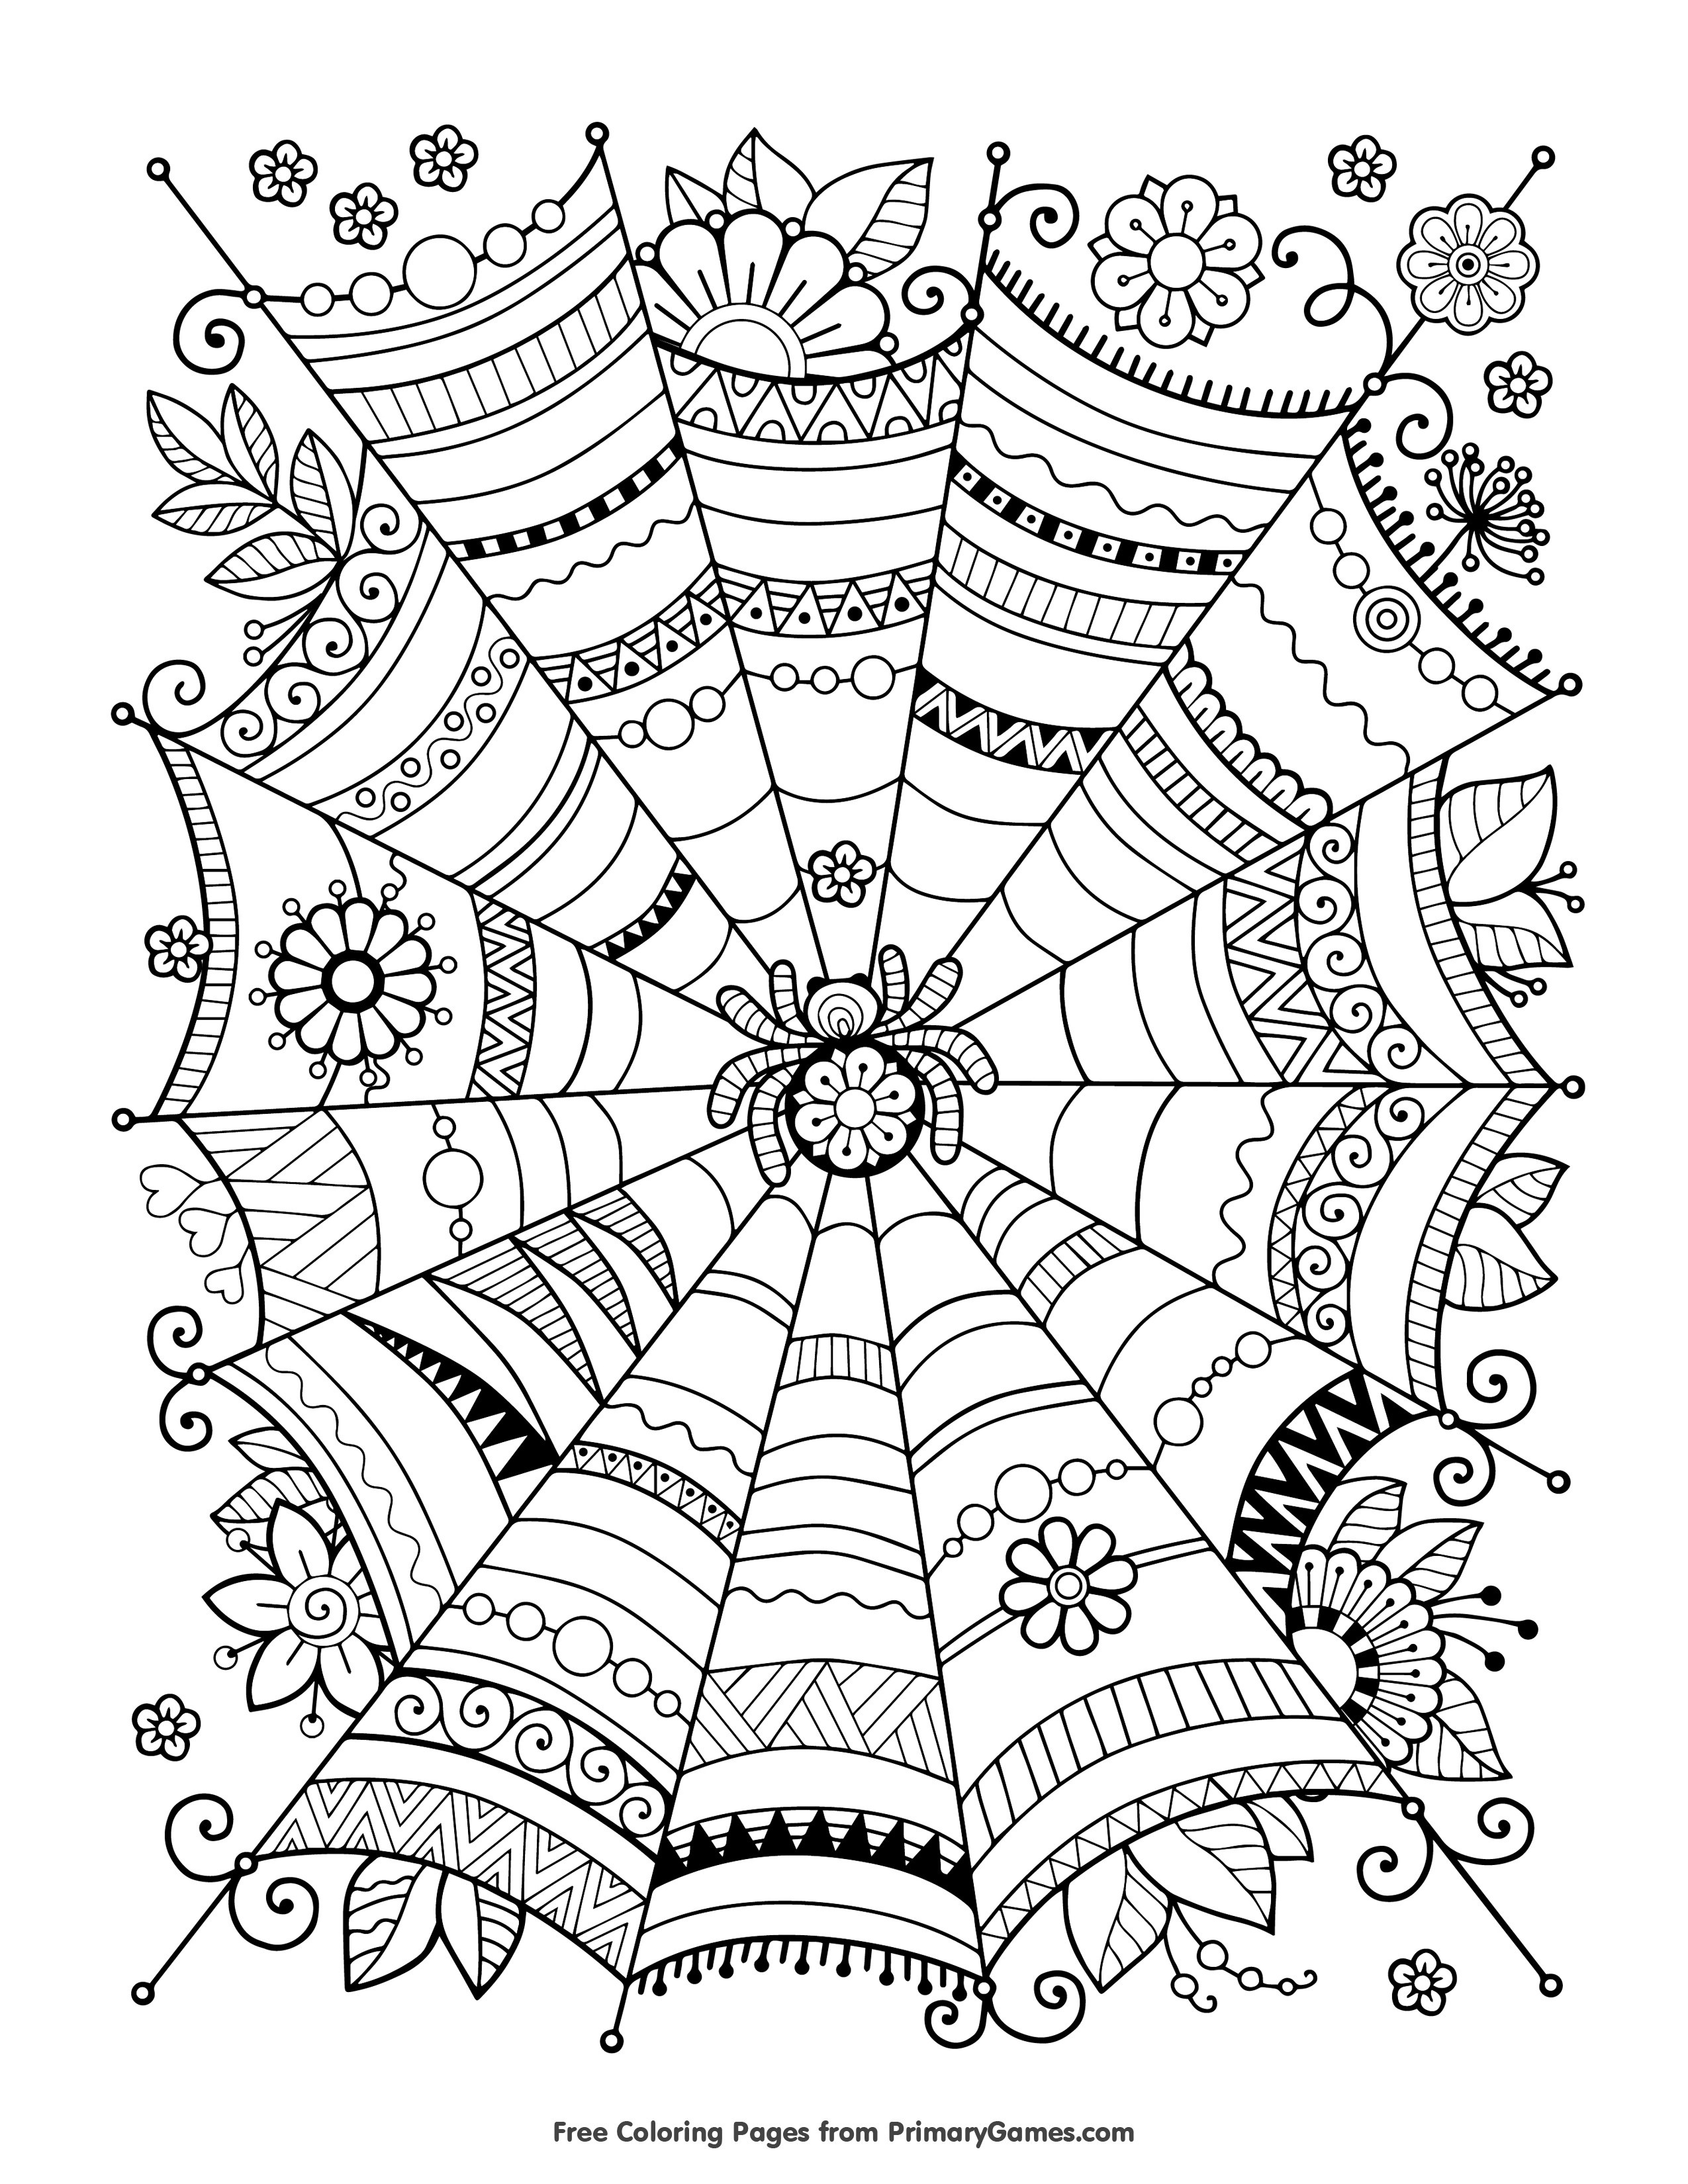 Free Printable Halloween Coloring Pages Adults Archives - Free Printable Halloween Coloring Pages